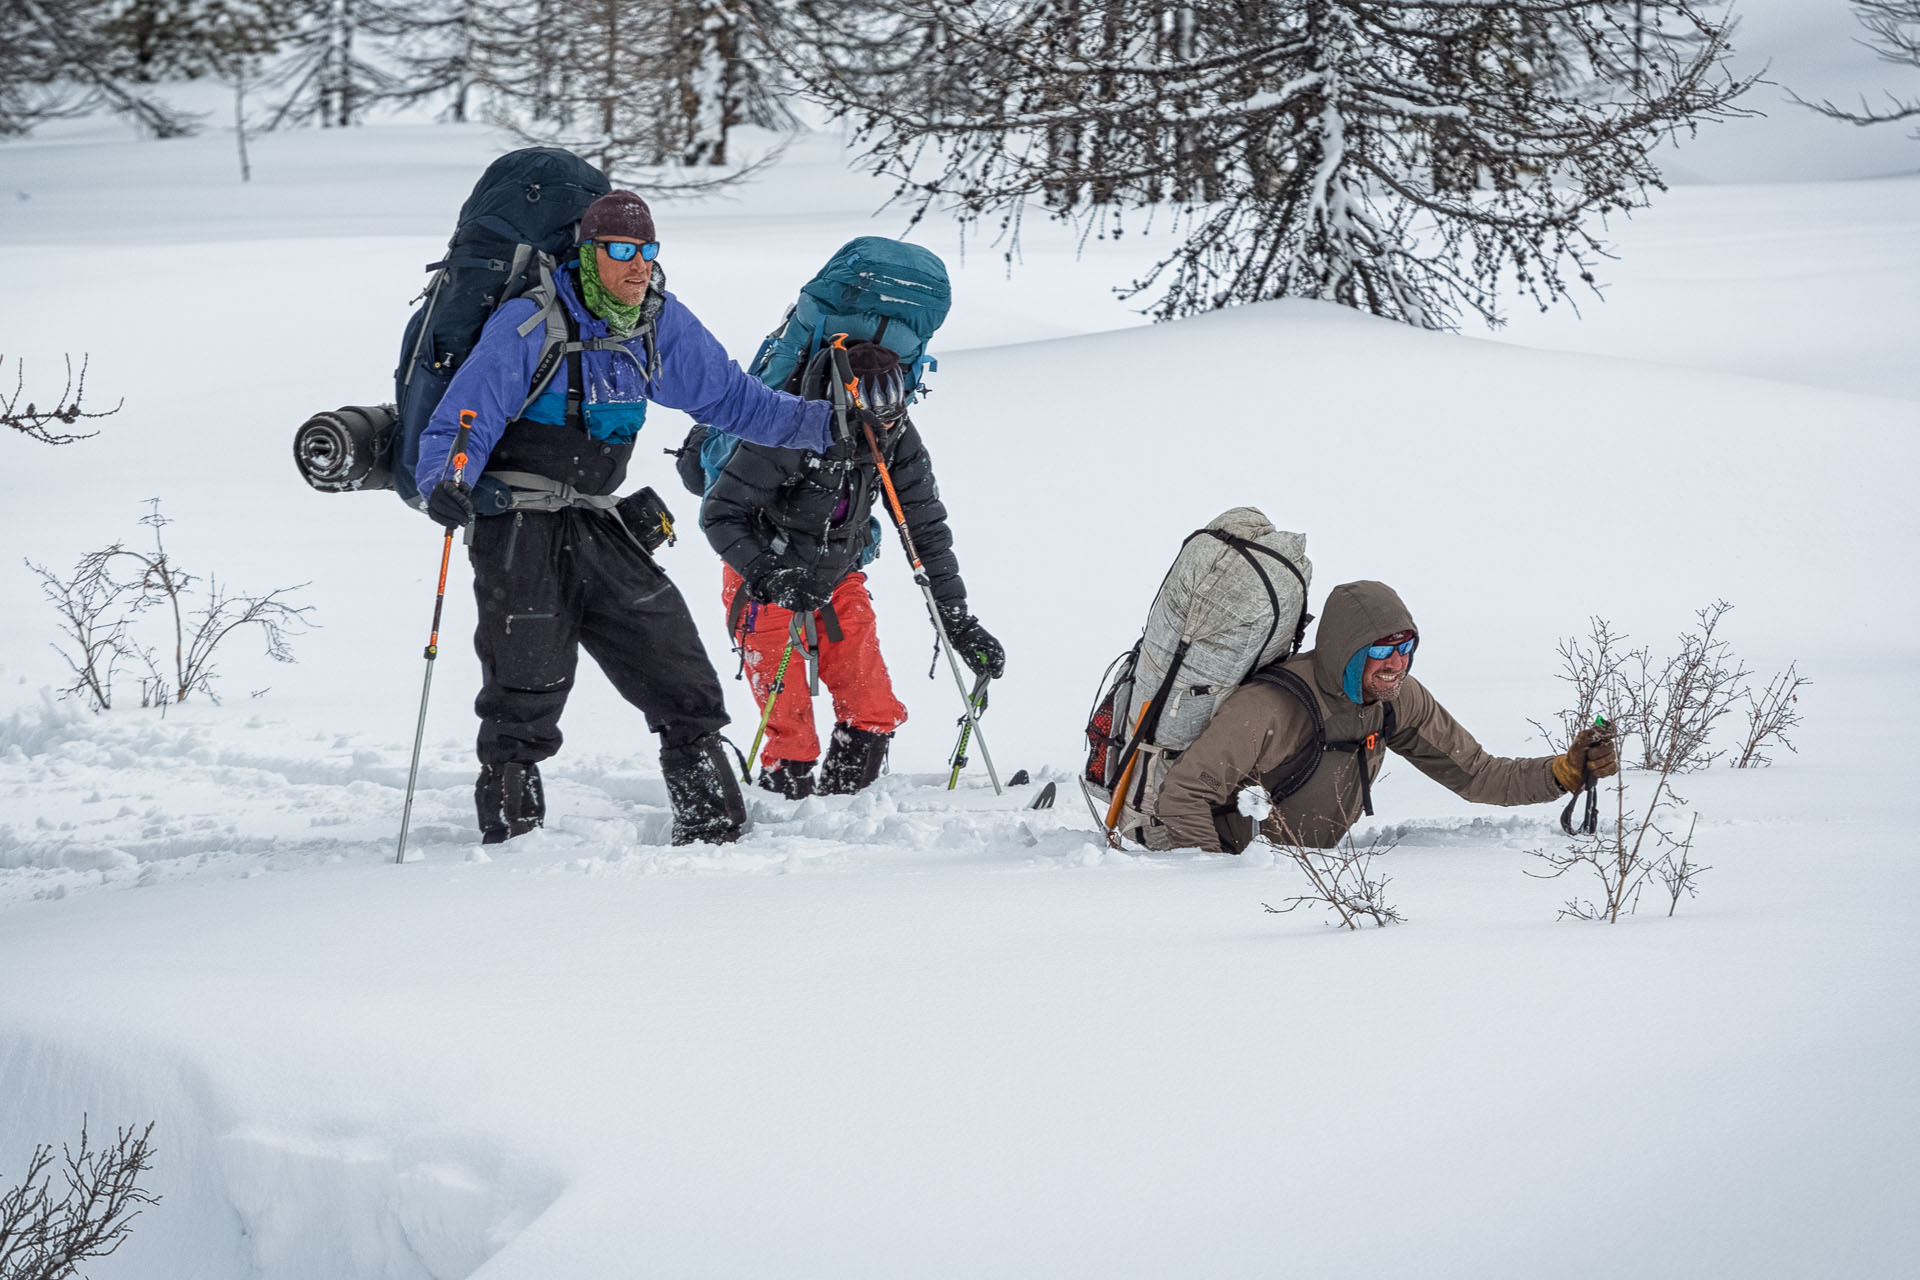 After a few feet where the snow was supportable, the person breaking trail would suddenly drop 2 or 3 feet through the weak loose snow grains below. It made for frustrating, tiring, and slow travel. Forrest McCarthy wallows while Jason Wilmot and Rebecca Watters look on.